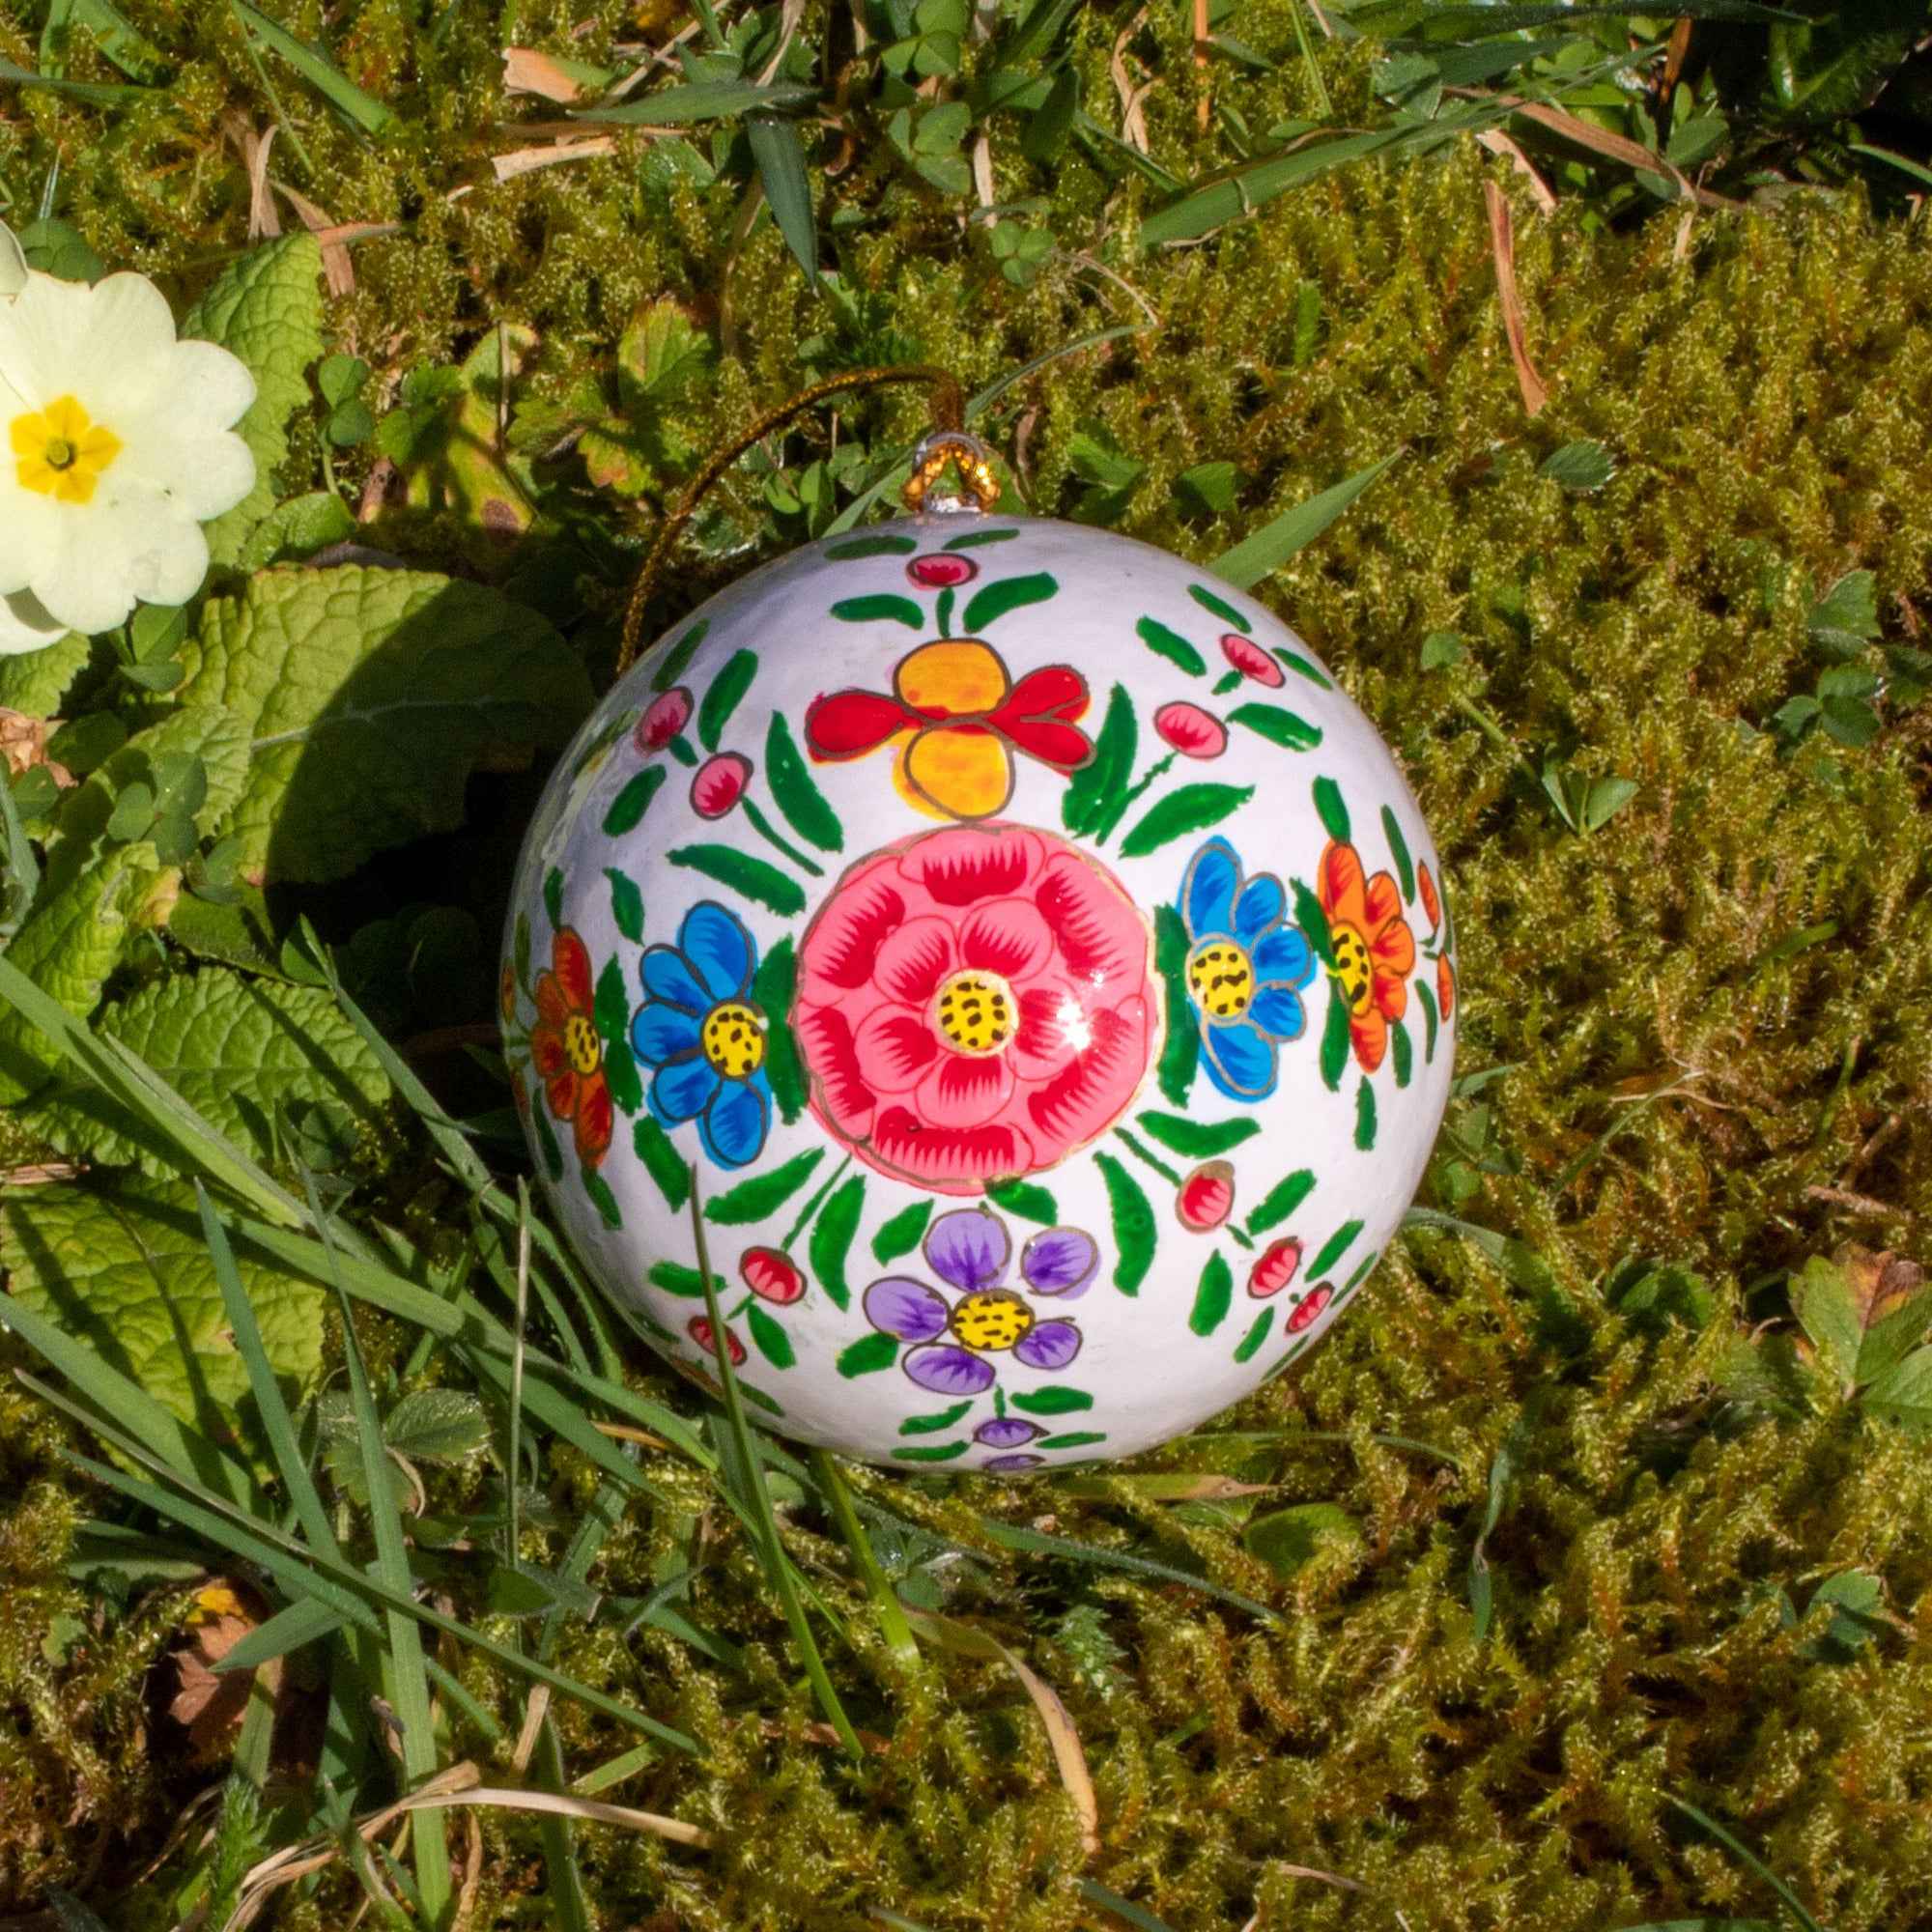 Spring/Easter Decoration - White Bauble With Painted Flowers | Decoration - The Naughty Shrew